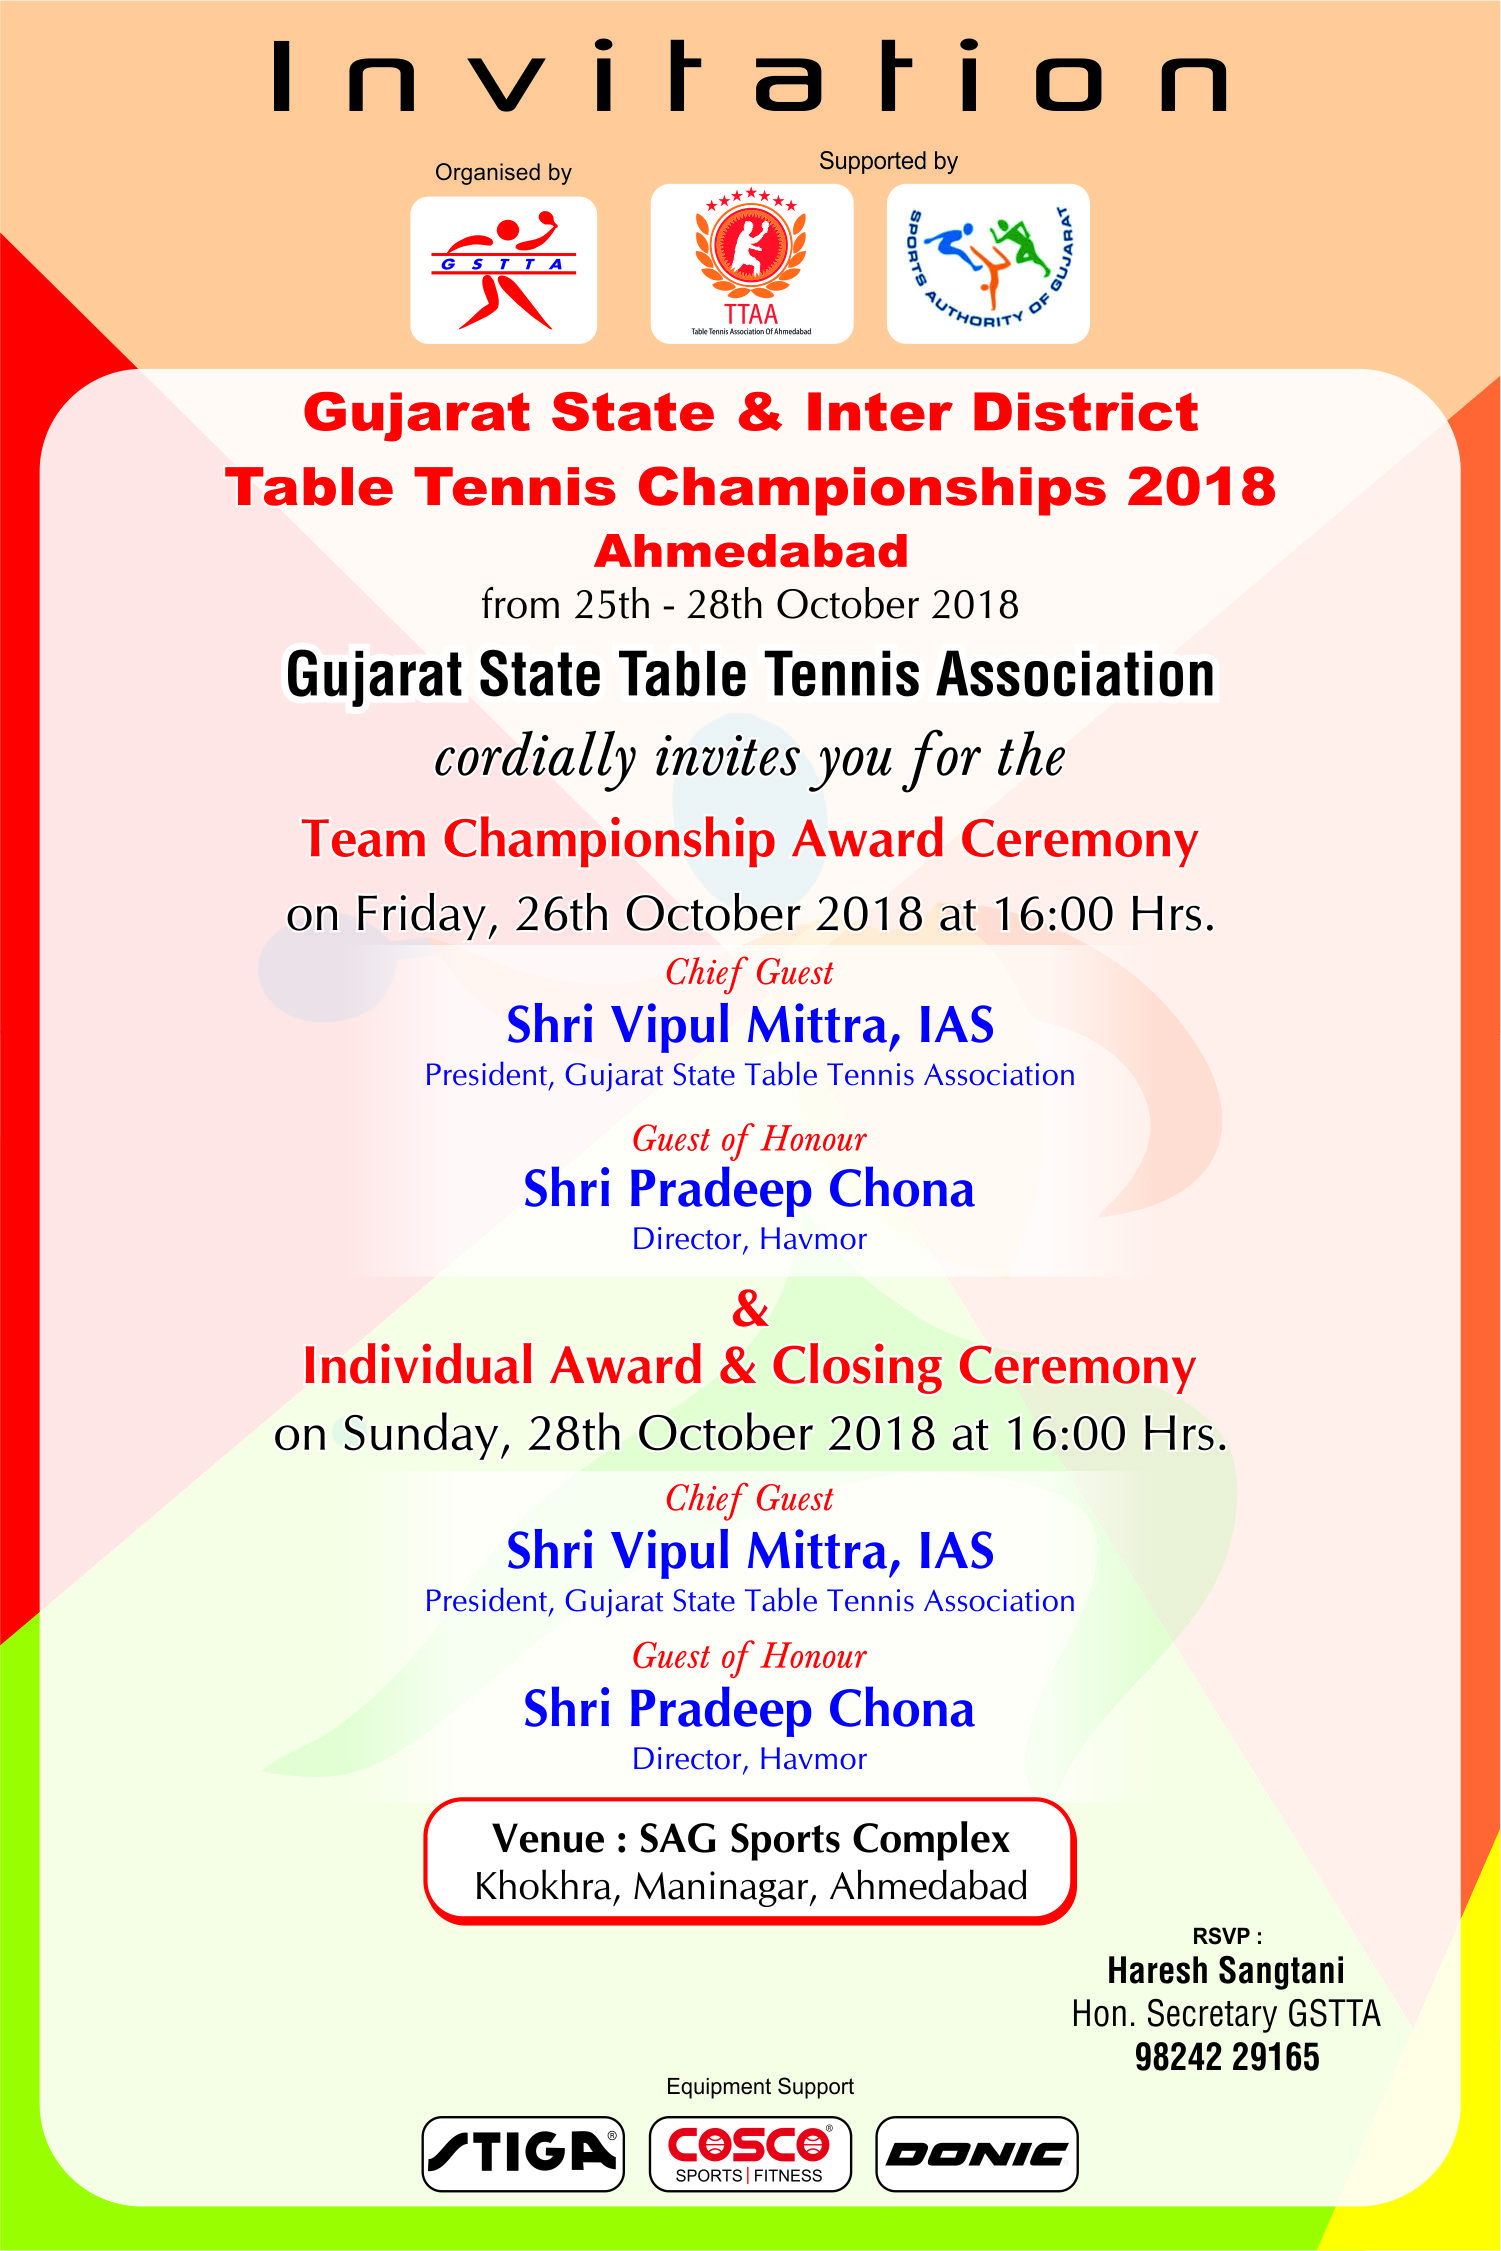 GSTTA – Gujarat State Table Tennis Association | Gujarat State and